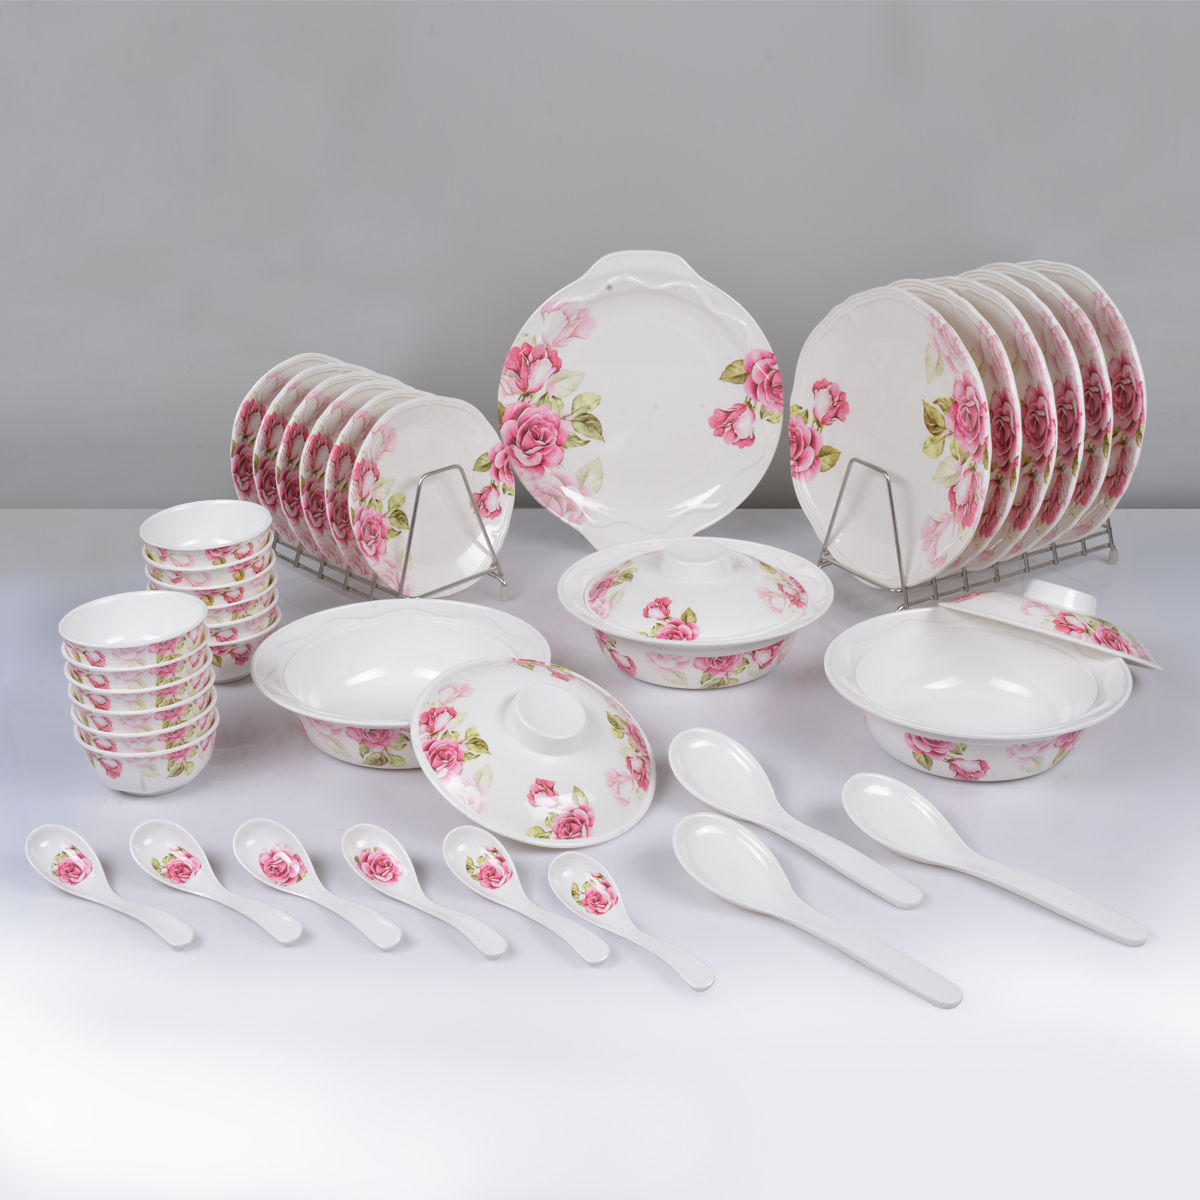 Buy 40 Pcs Floral Print Melamine Dinner Set Online At Best Price In